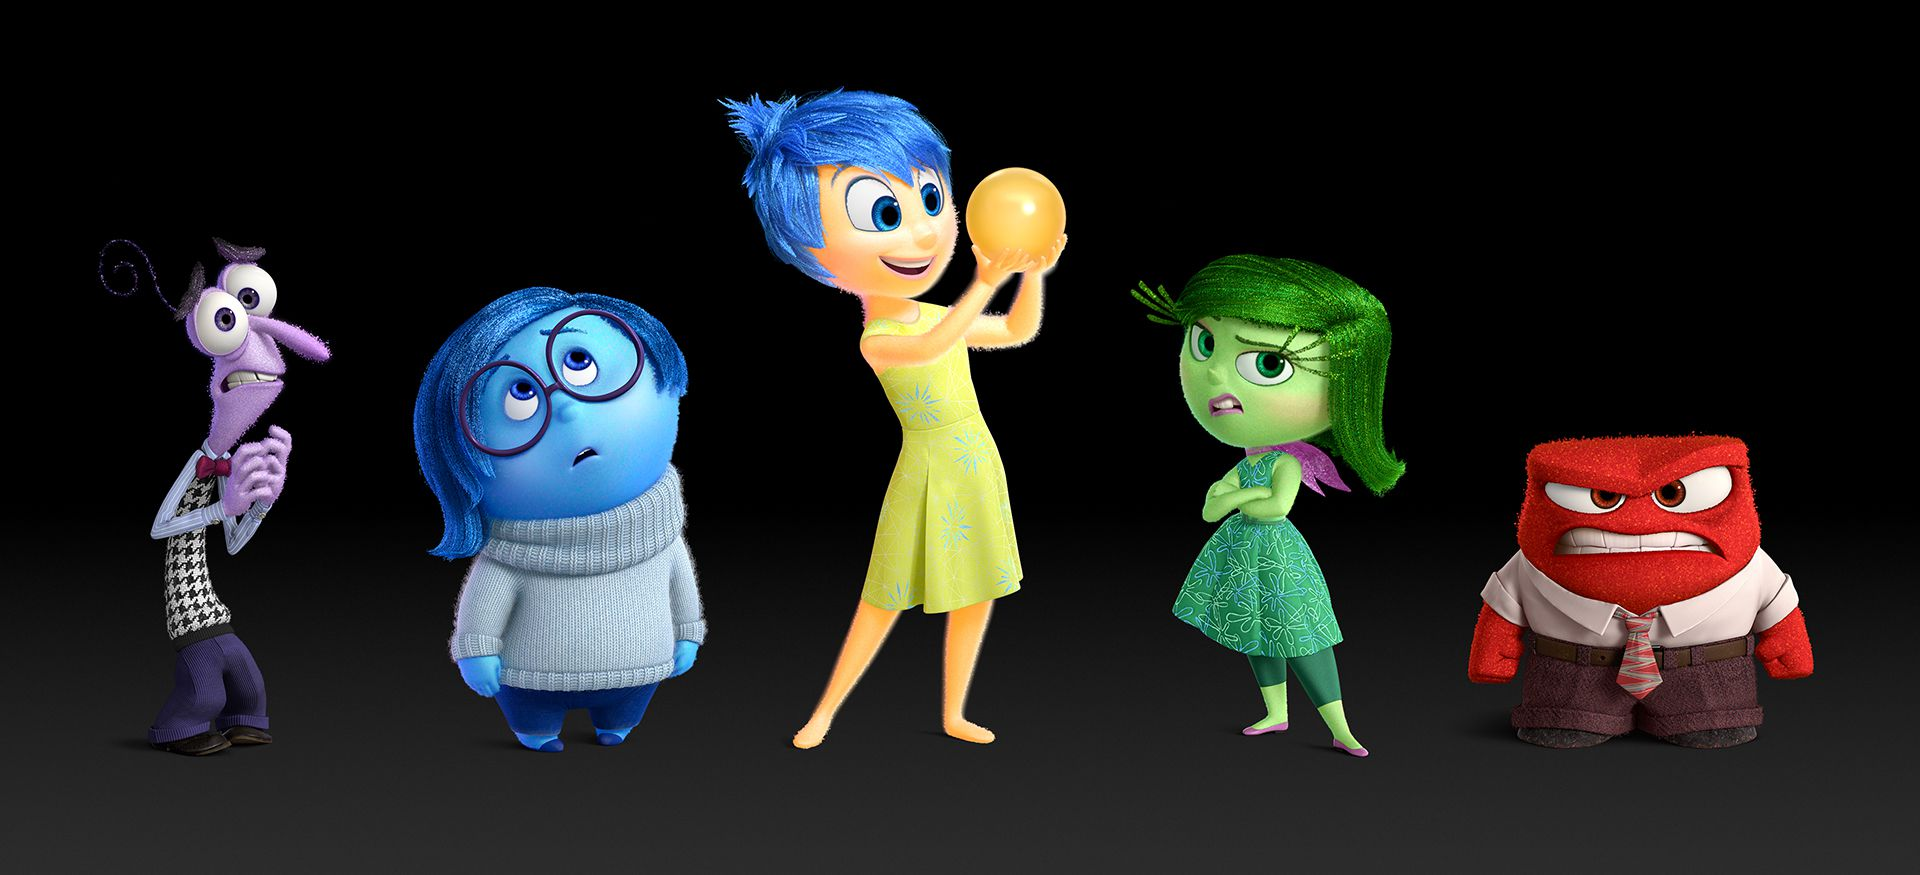 inside out - photo #1